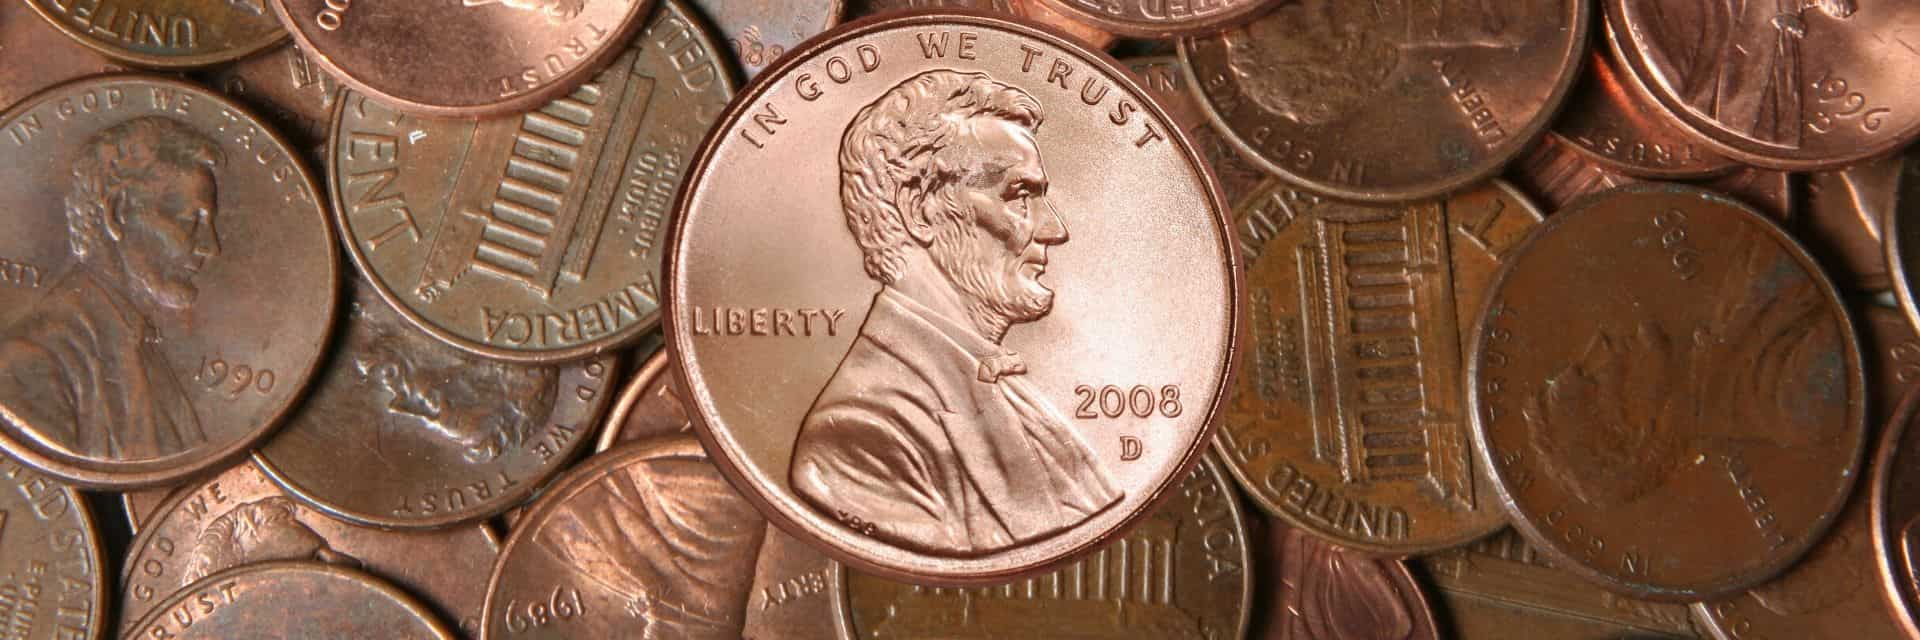 shiny penny on pile of dull pennies